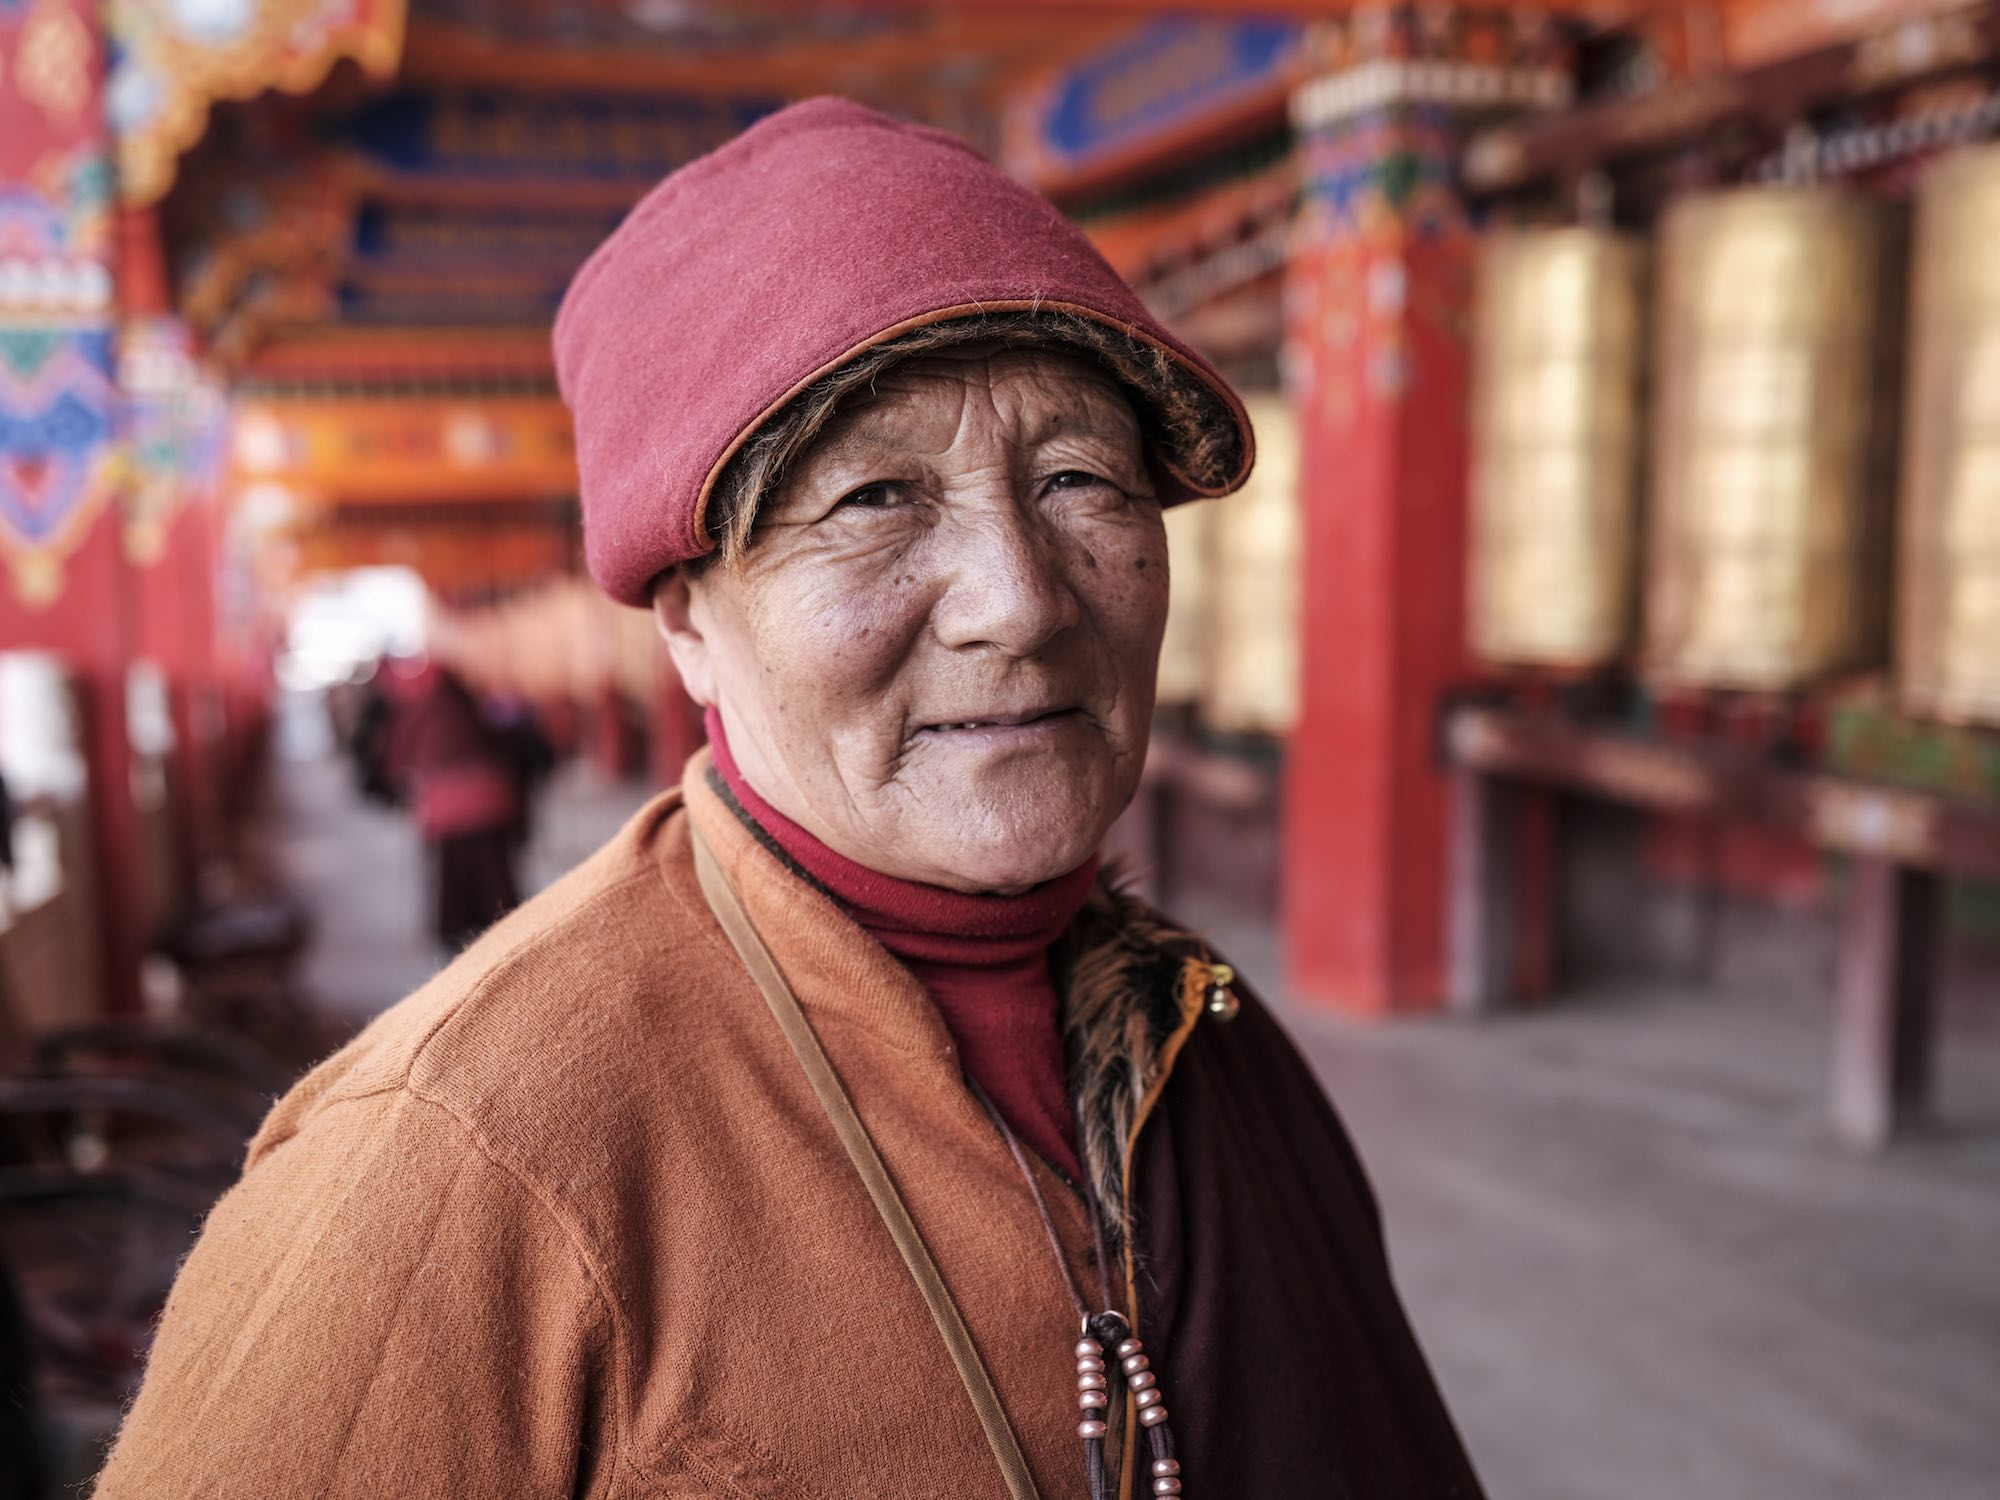 Tibet China Jose Jeuland Fujifilm GFX 50R x photographer travel documentary photography